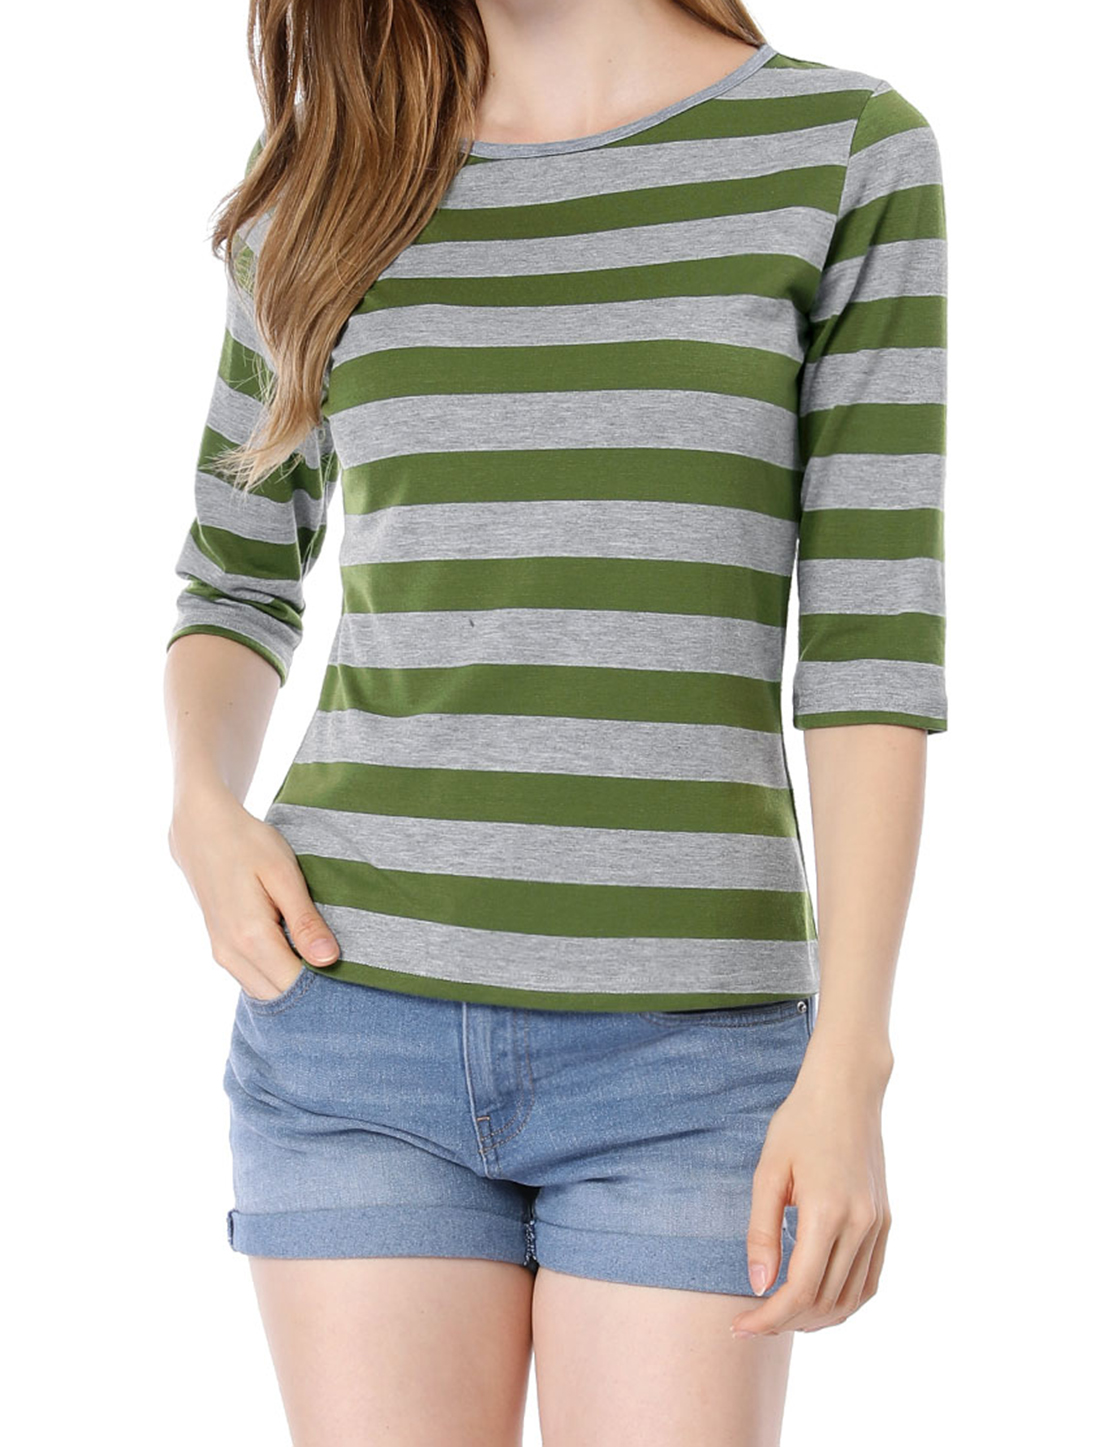 Women 1/2 Sleeves Contrast Color Stripes T-shirt Green Gray L